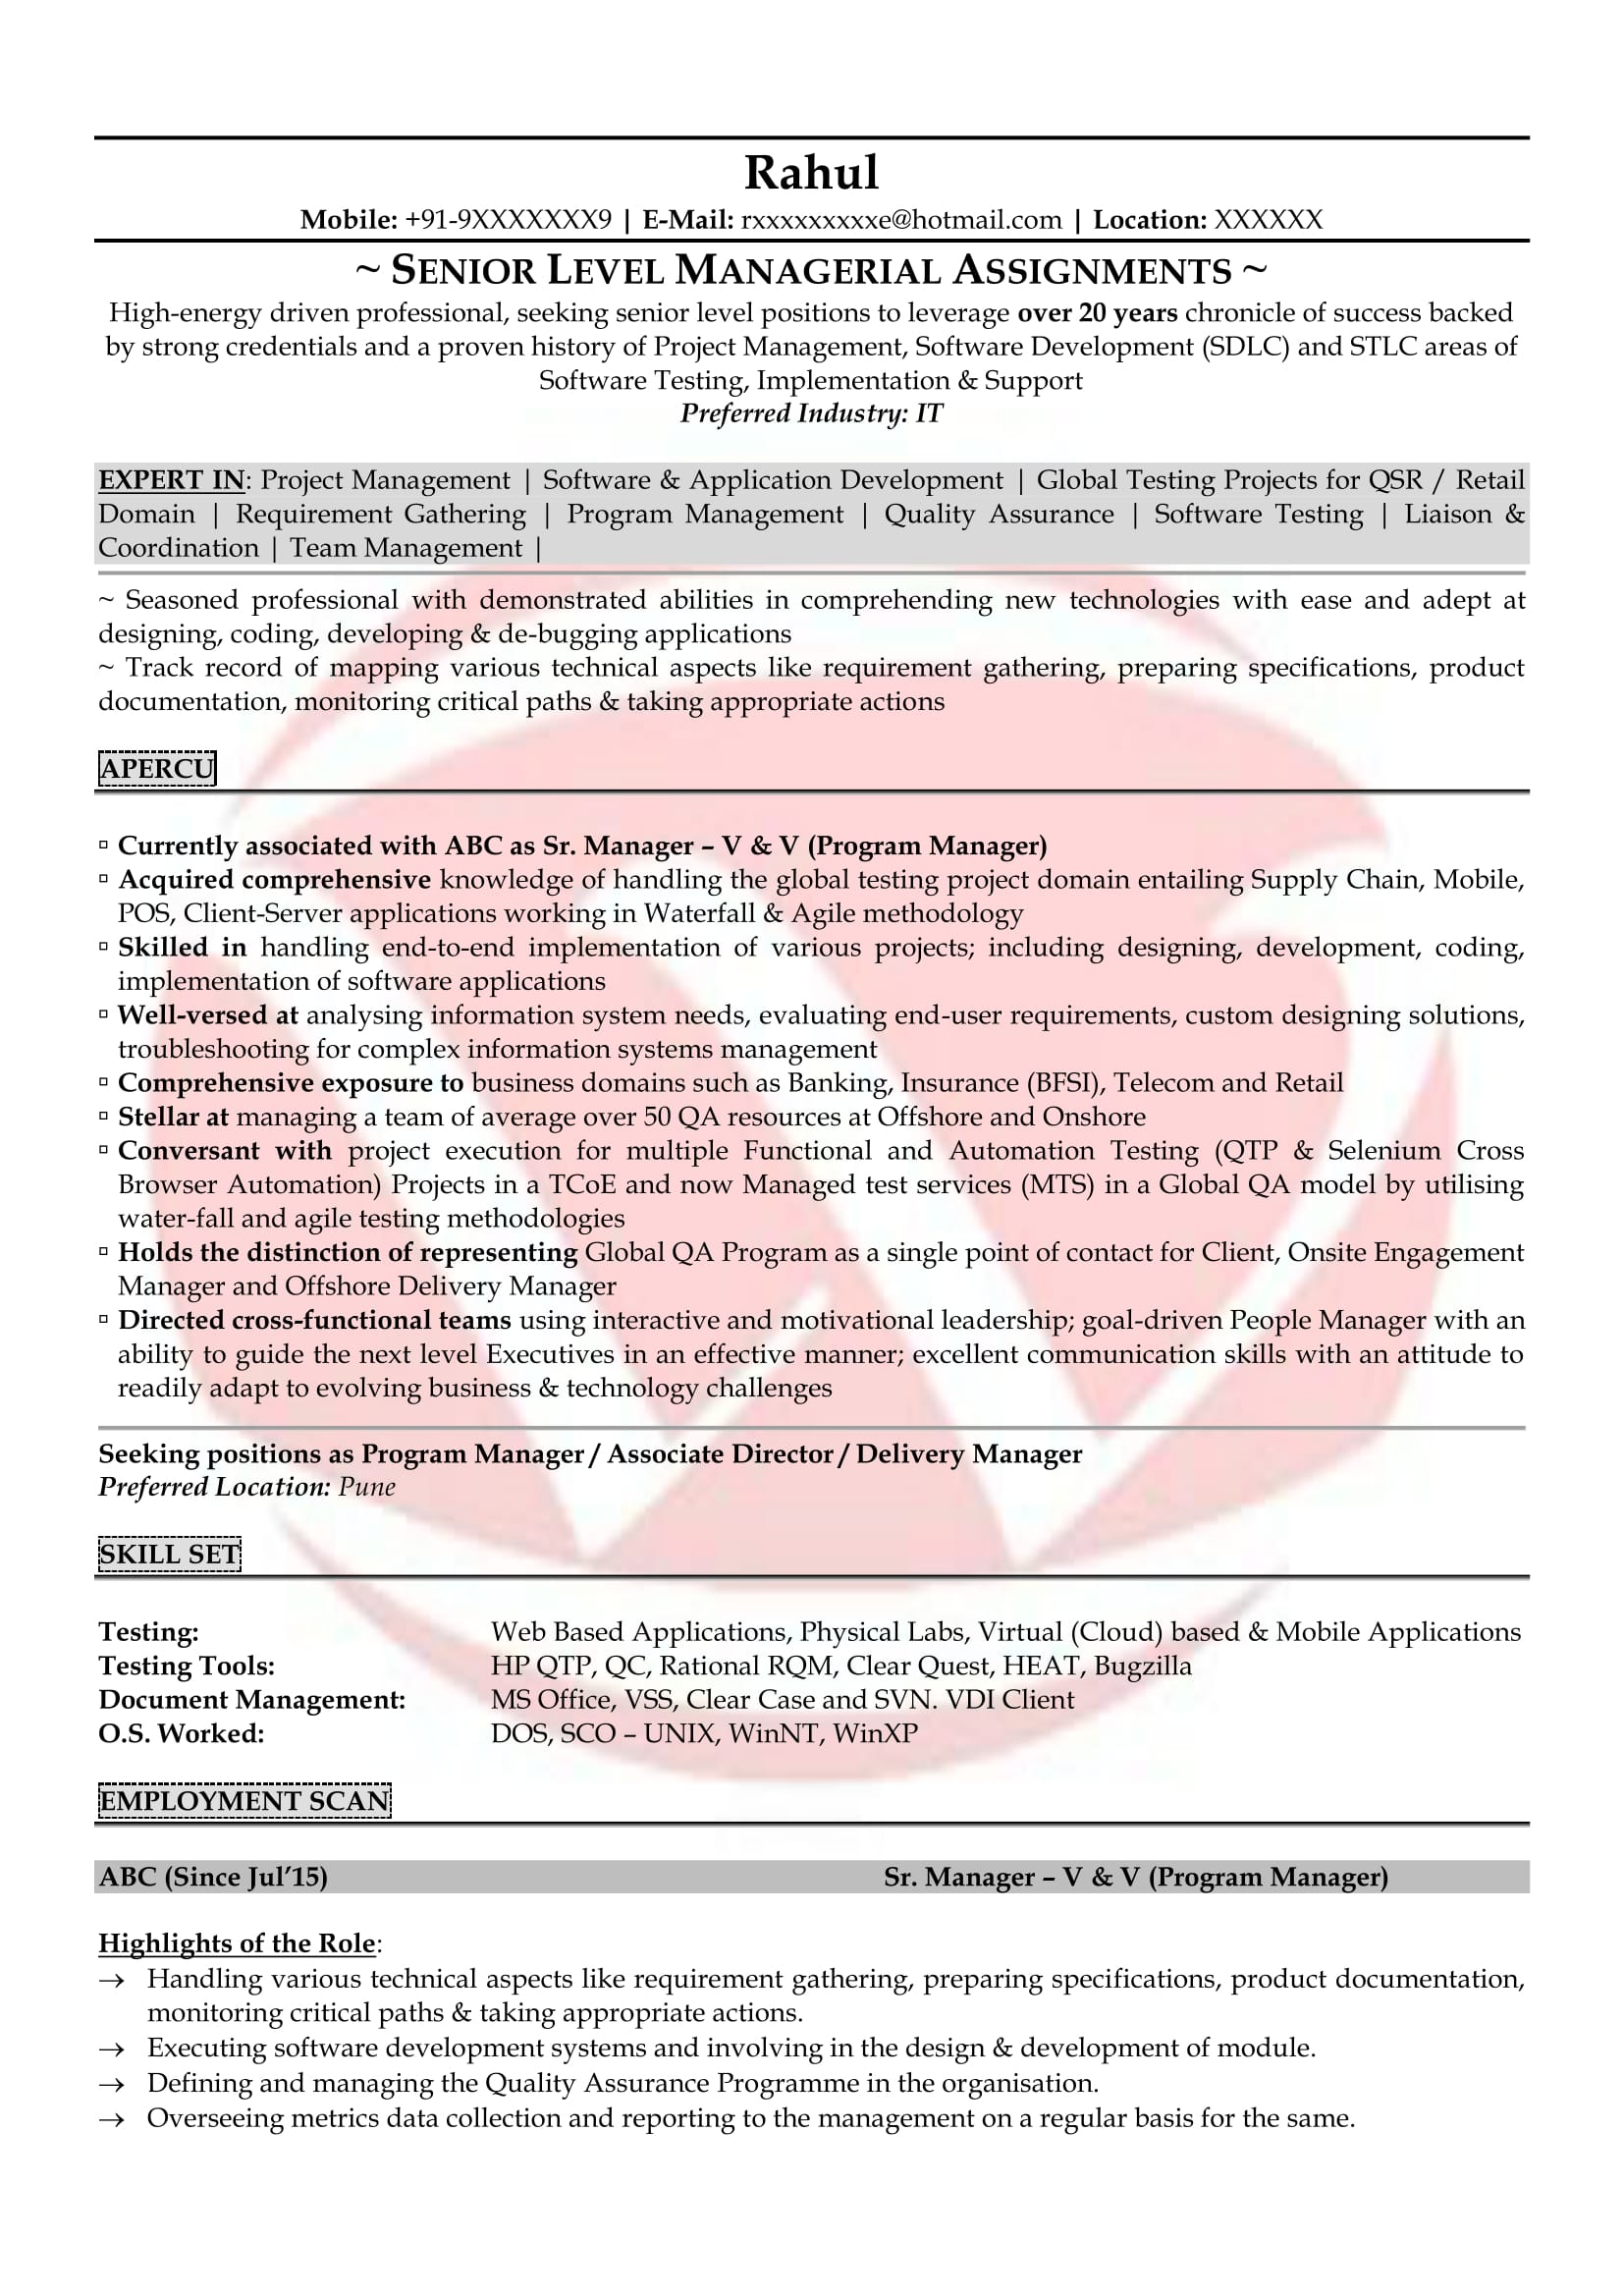 Software Testing Resume Format For Experienced Software Testing Sample Resumes Download Resume Format